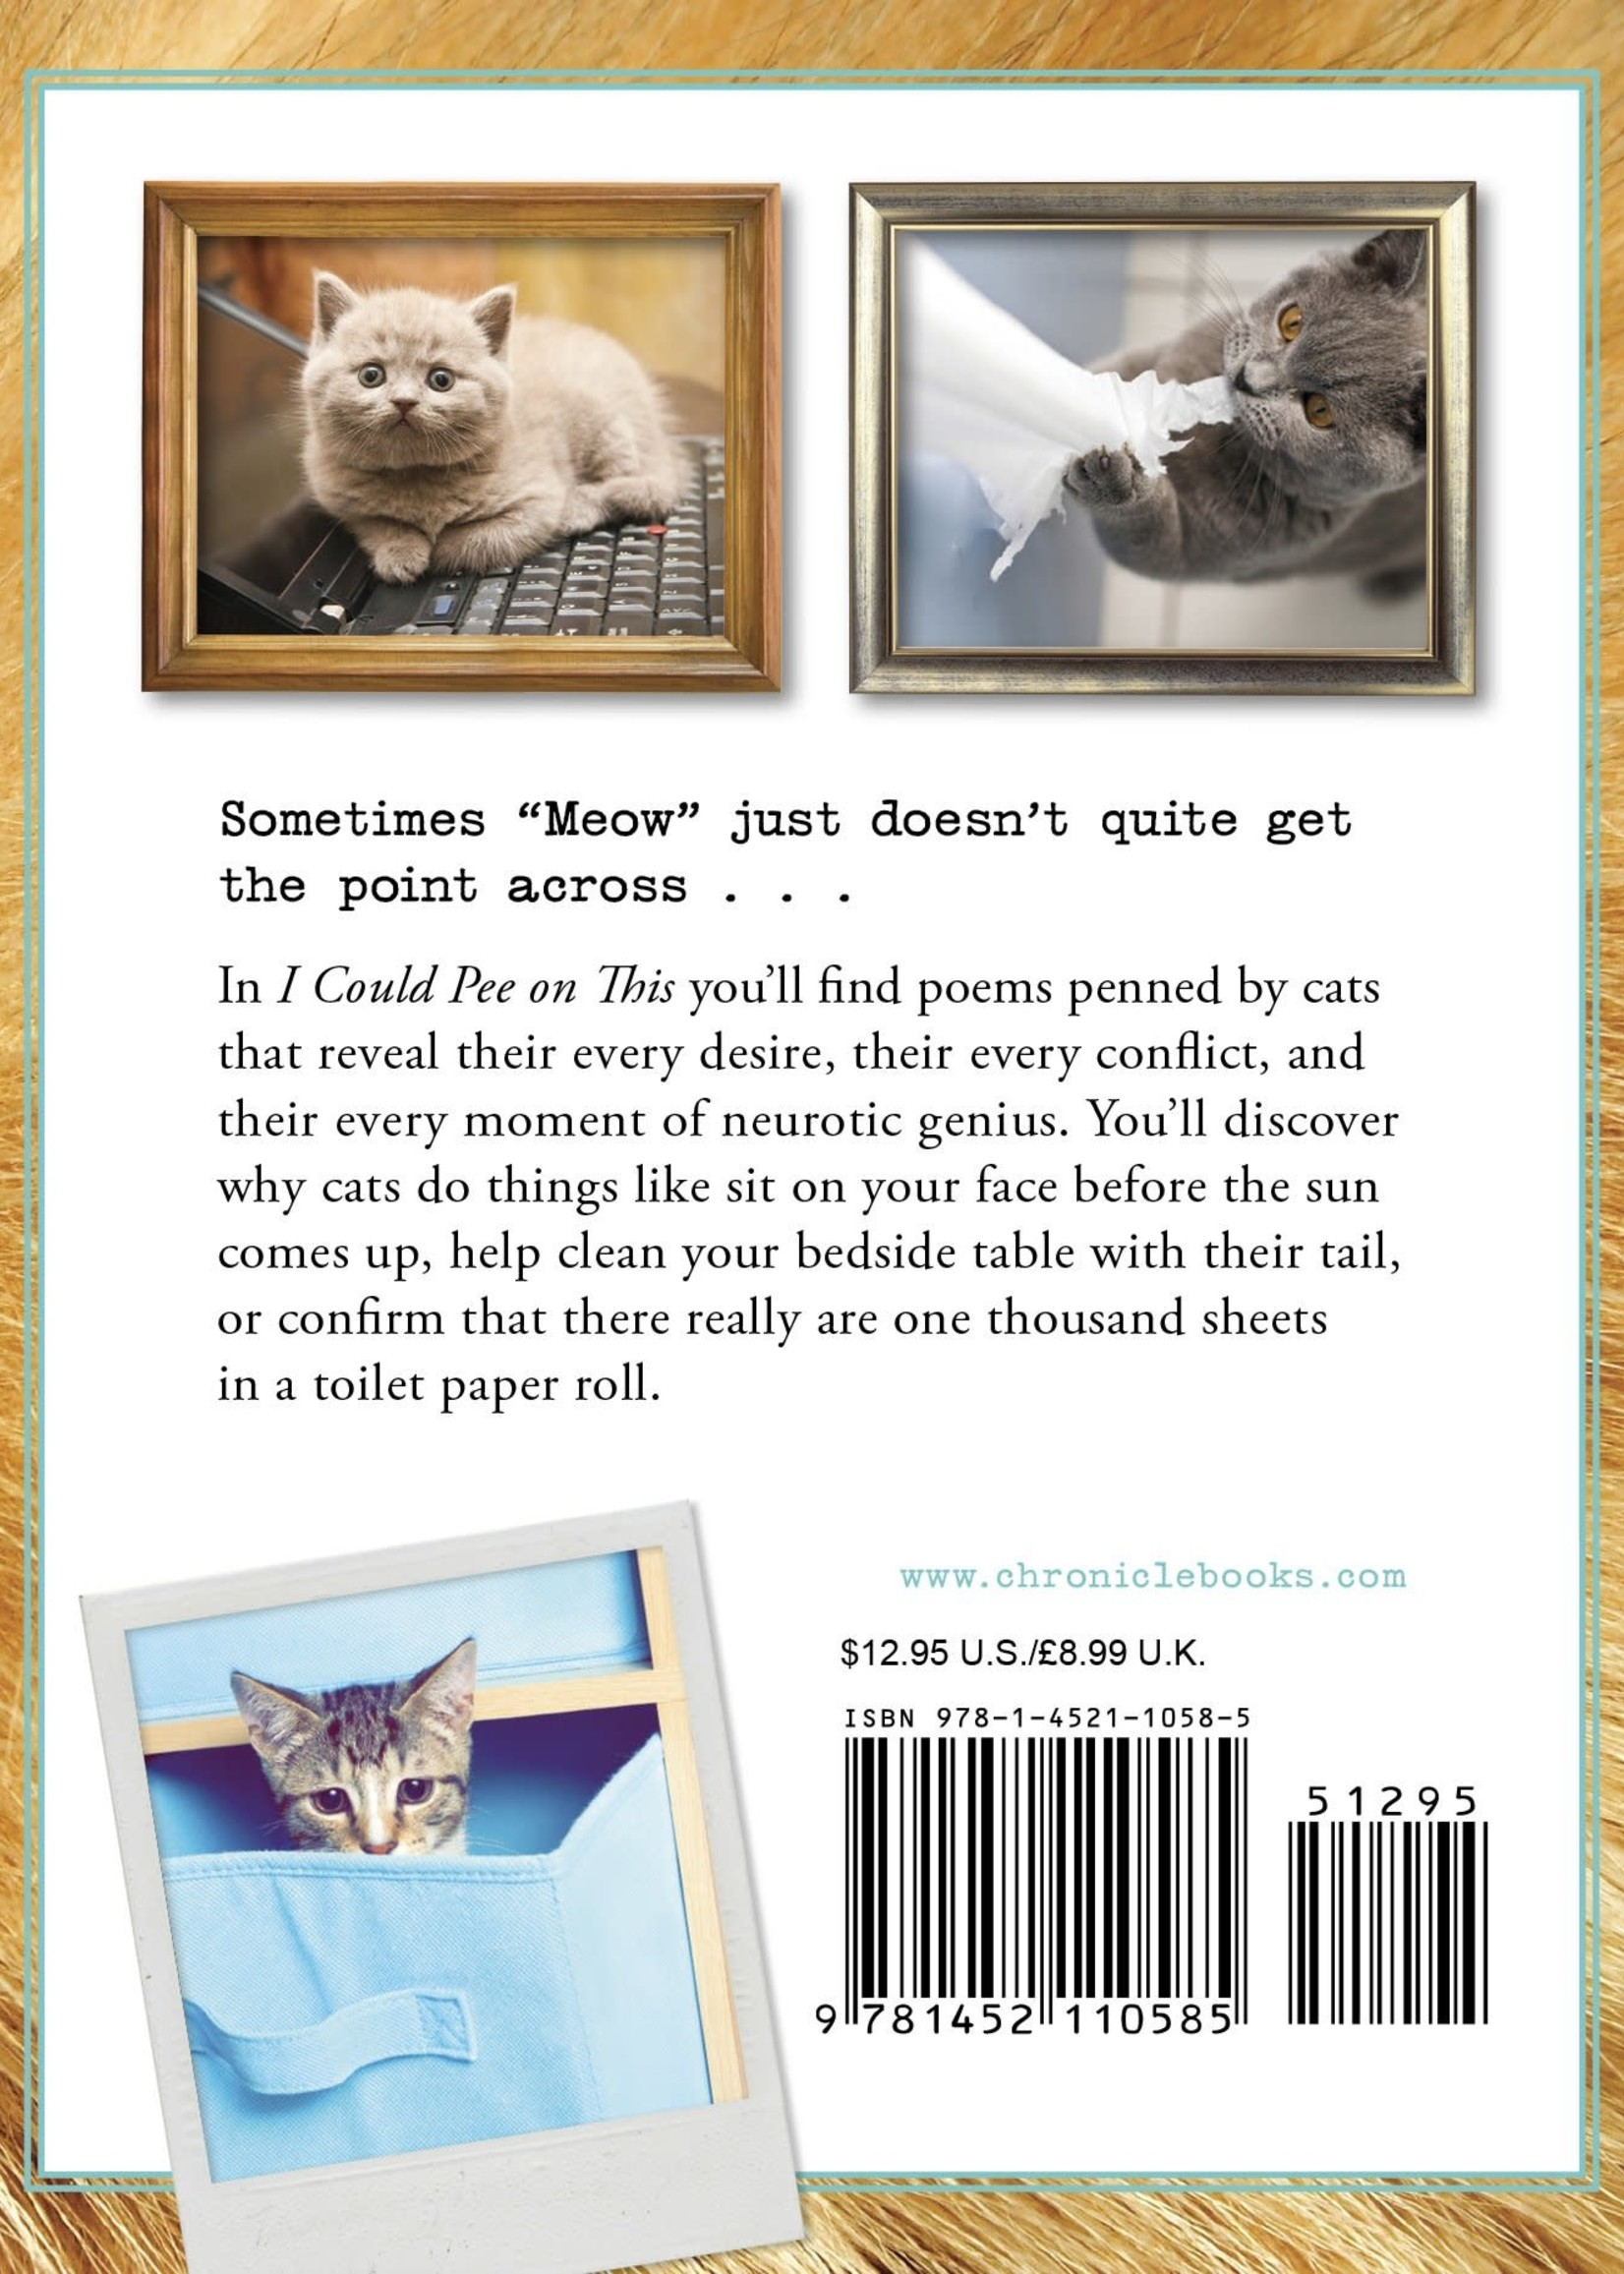 I Could Pee on This HB And Other Poems by Cats